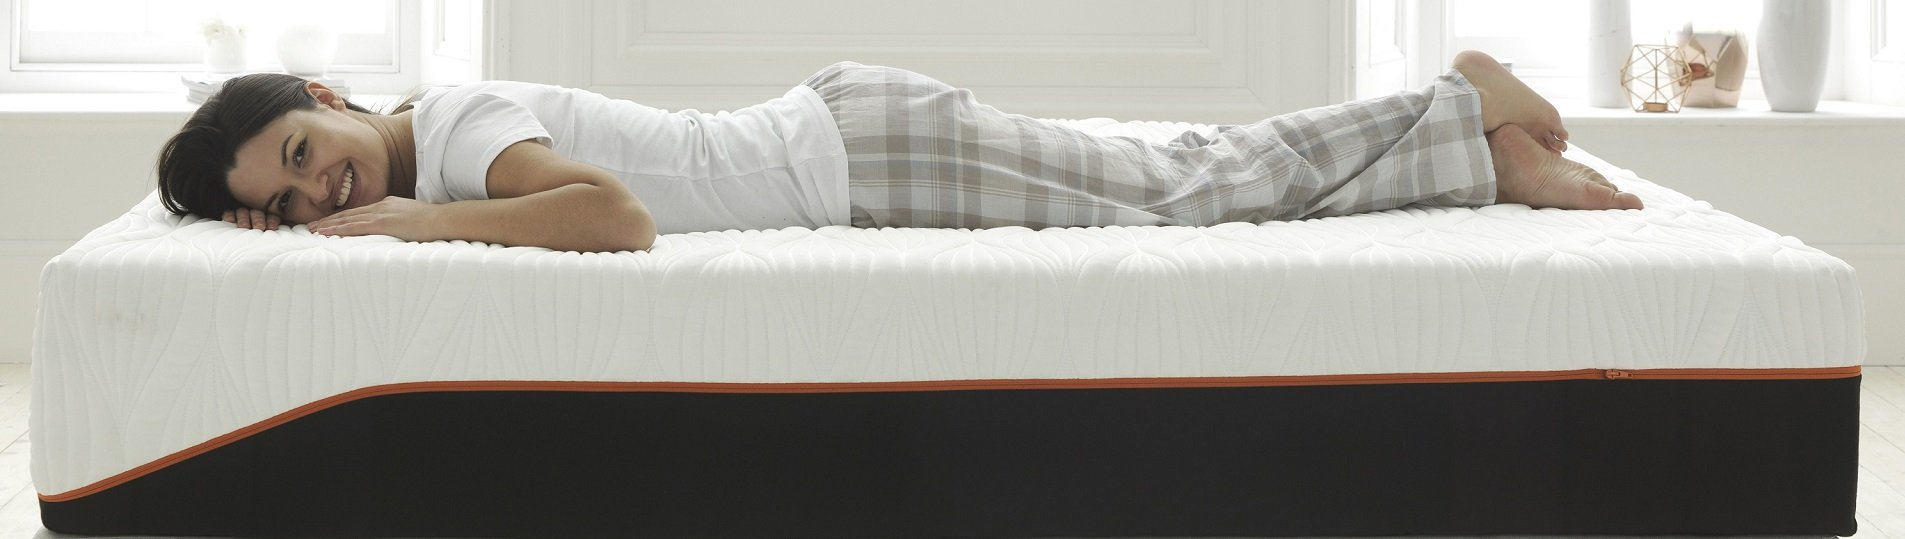 Best Mattresses for Scoliosis Reviewed in Detail